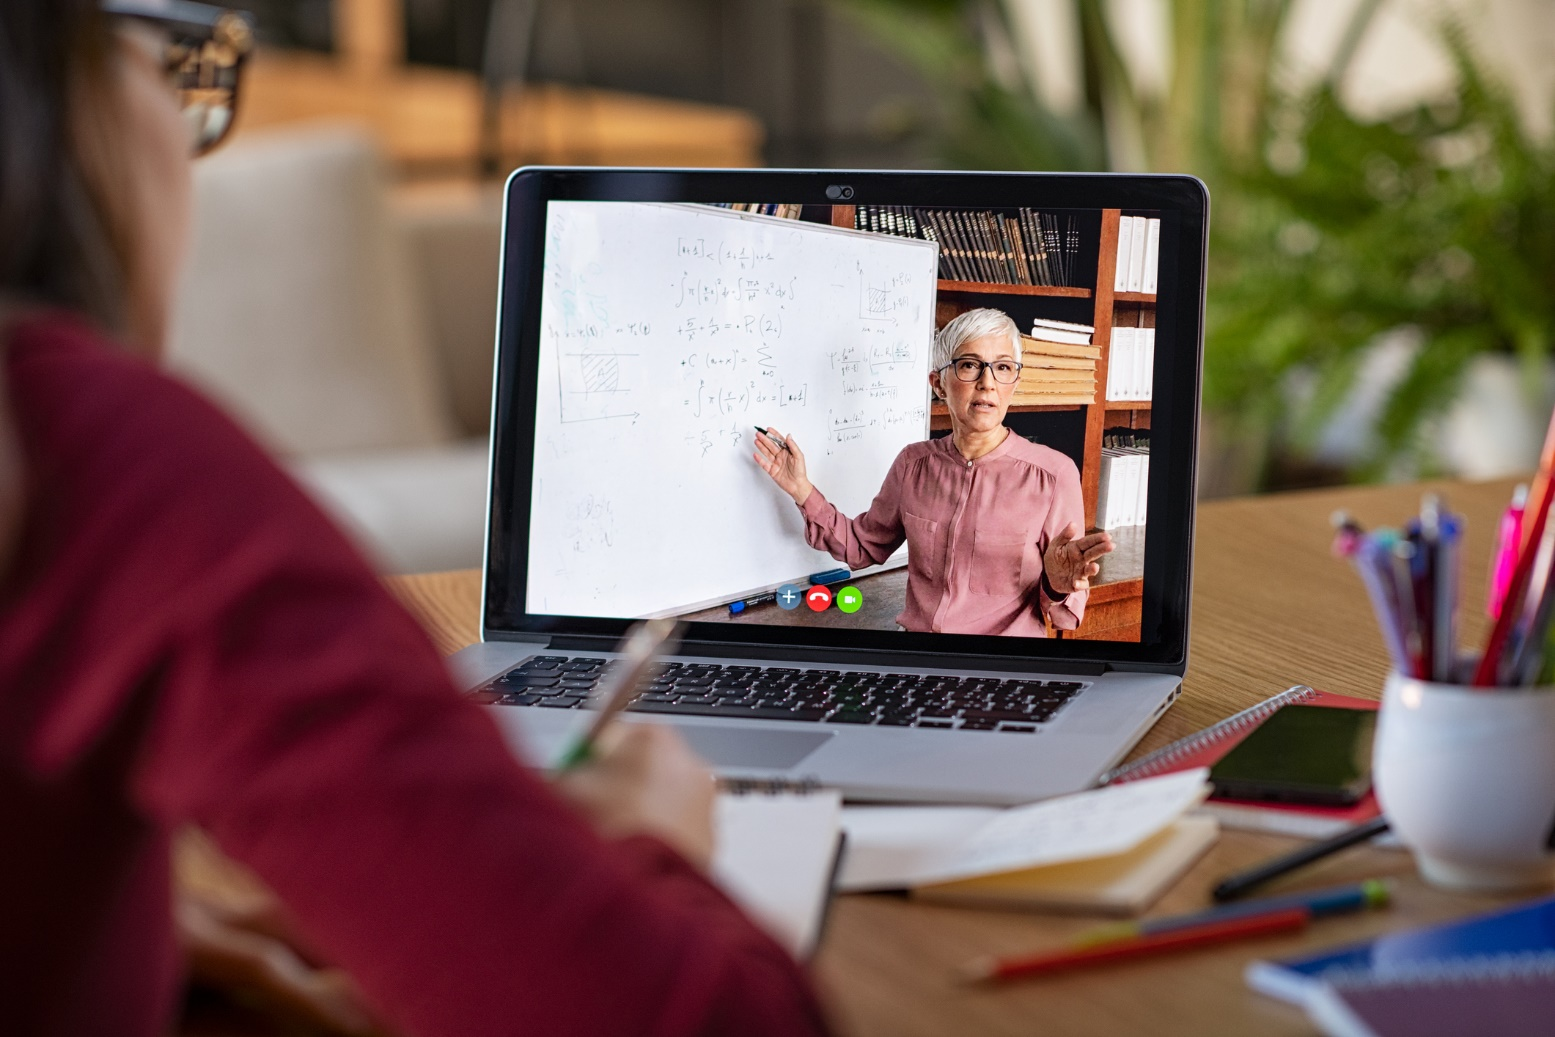 higher education marketing trends 2020 include the virtual classroom